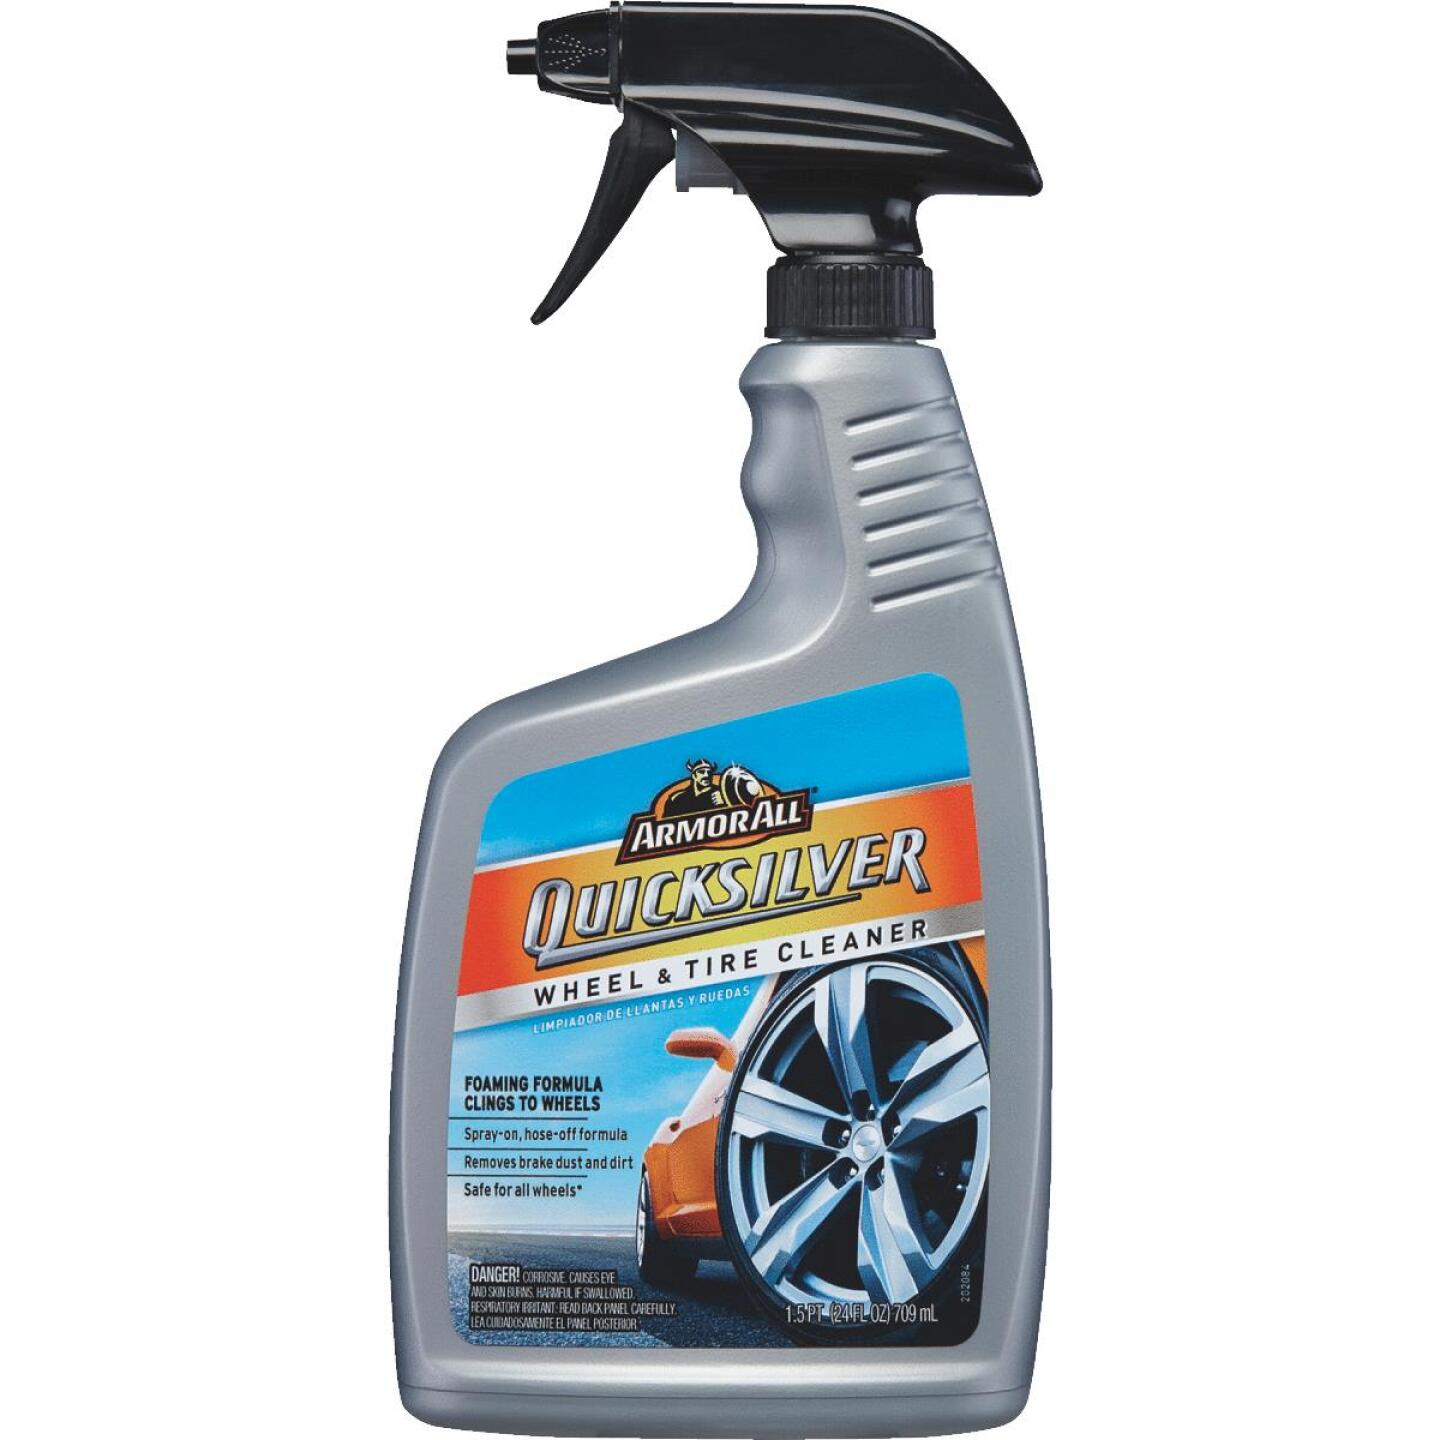 Armor All Quicksilver 24 oz Trigger Spray Wheel Cleaner Image 1